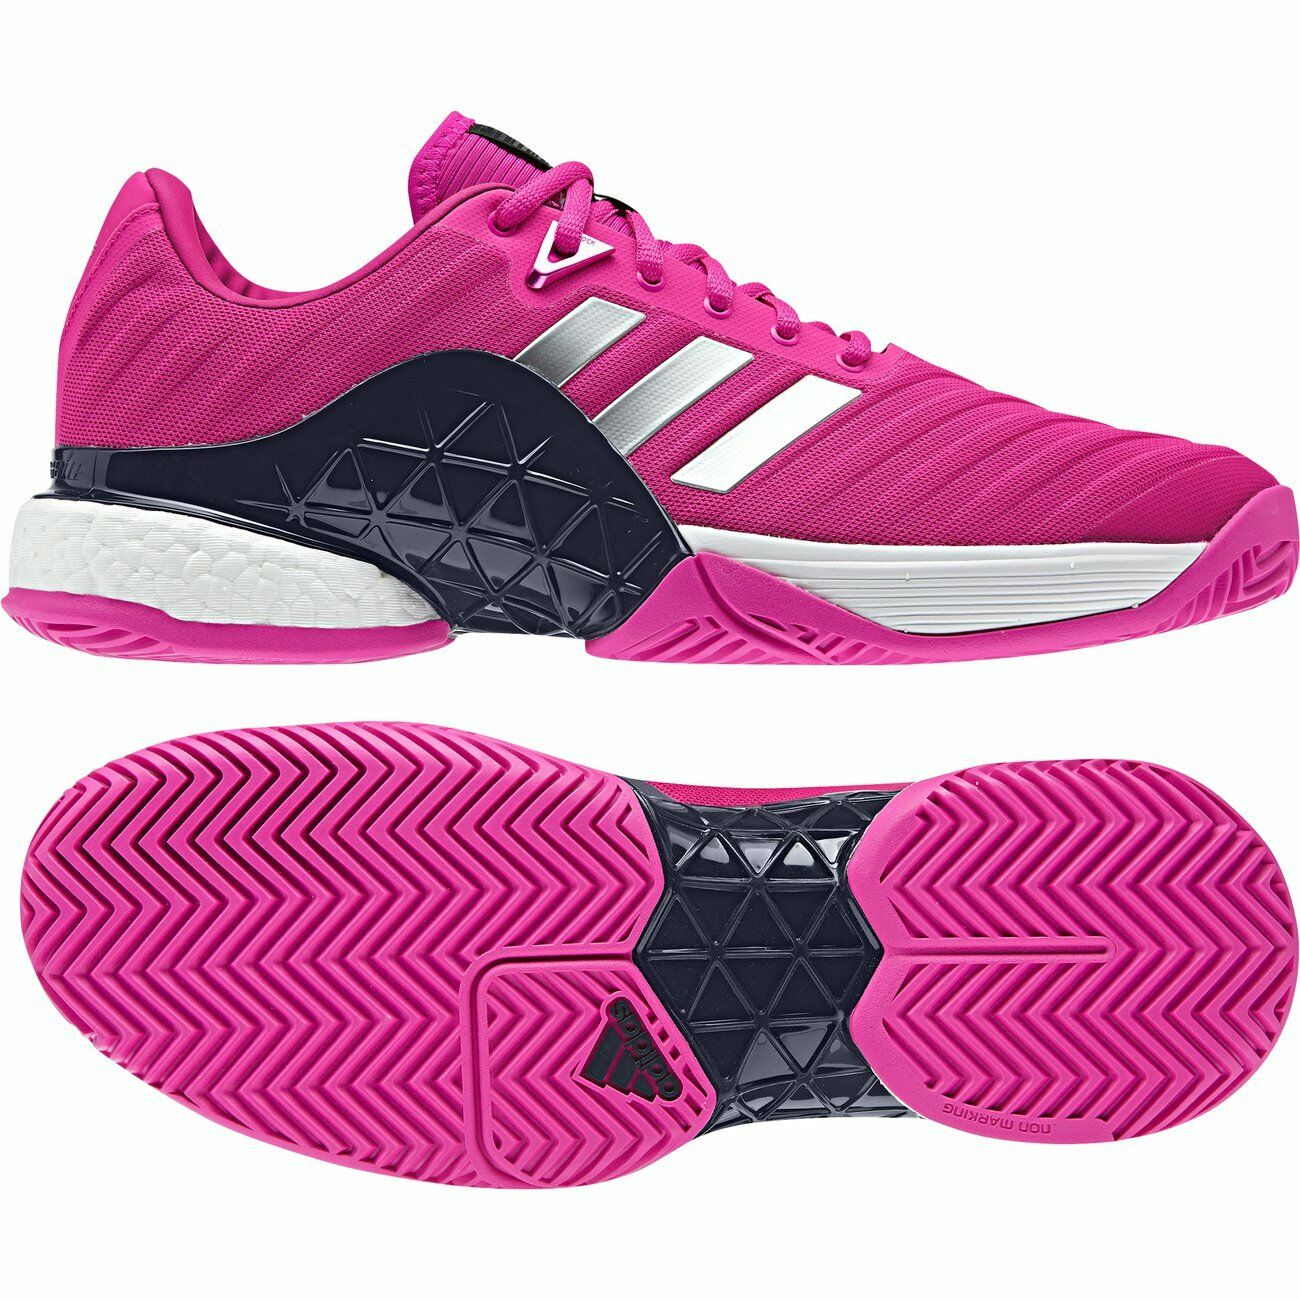 ADIDAS BARRICADE 2018 BOOST TENNIS SHOES MEN'S SIZE US 8 PINK AH2093